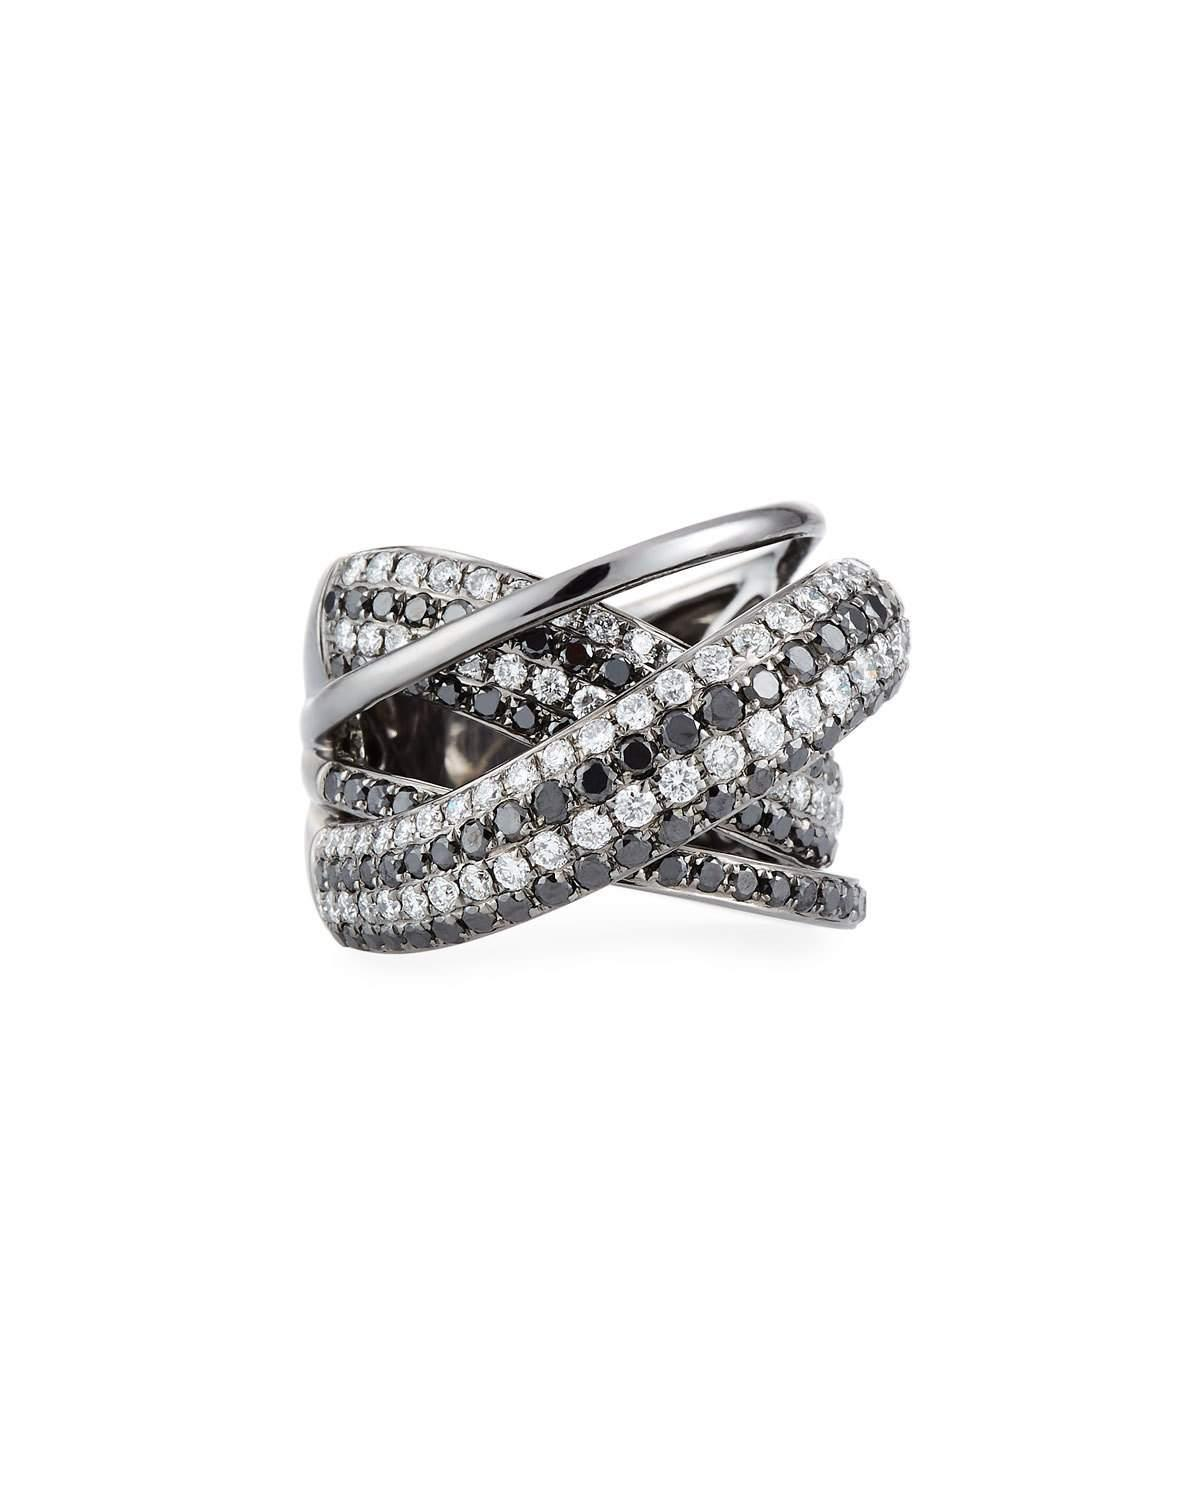 Diana M. Jewels 18K White Gold Two-Tone Diamond Crossover Ring